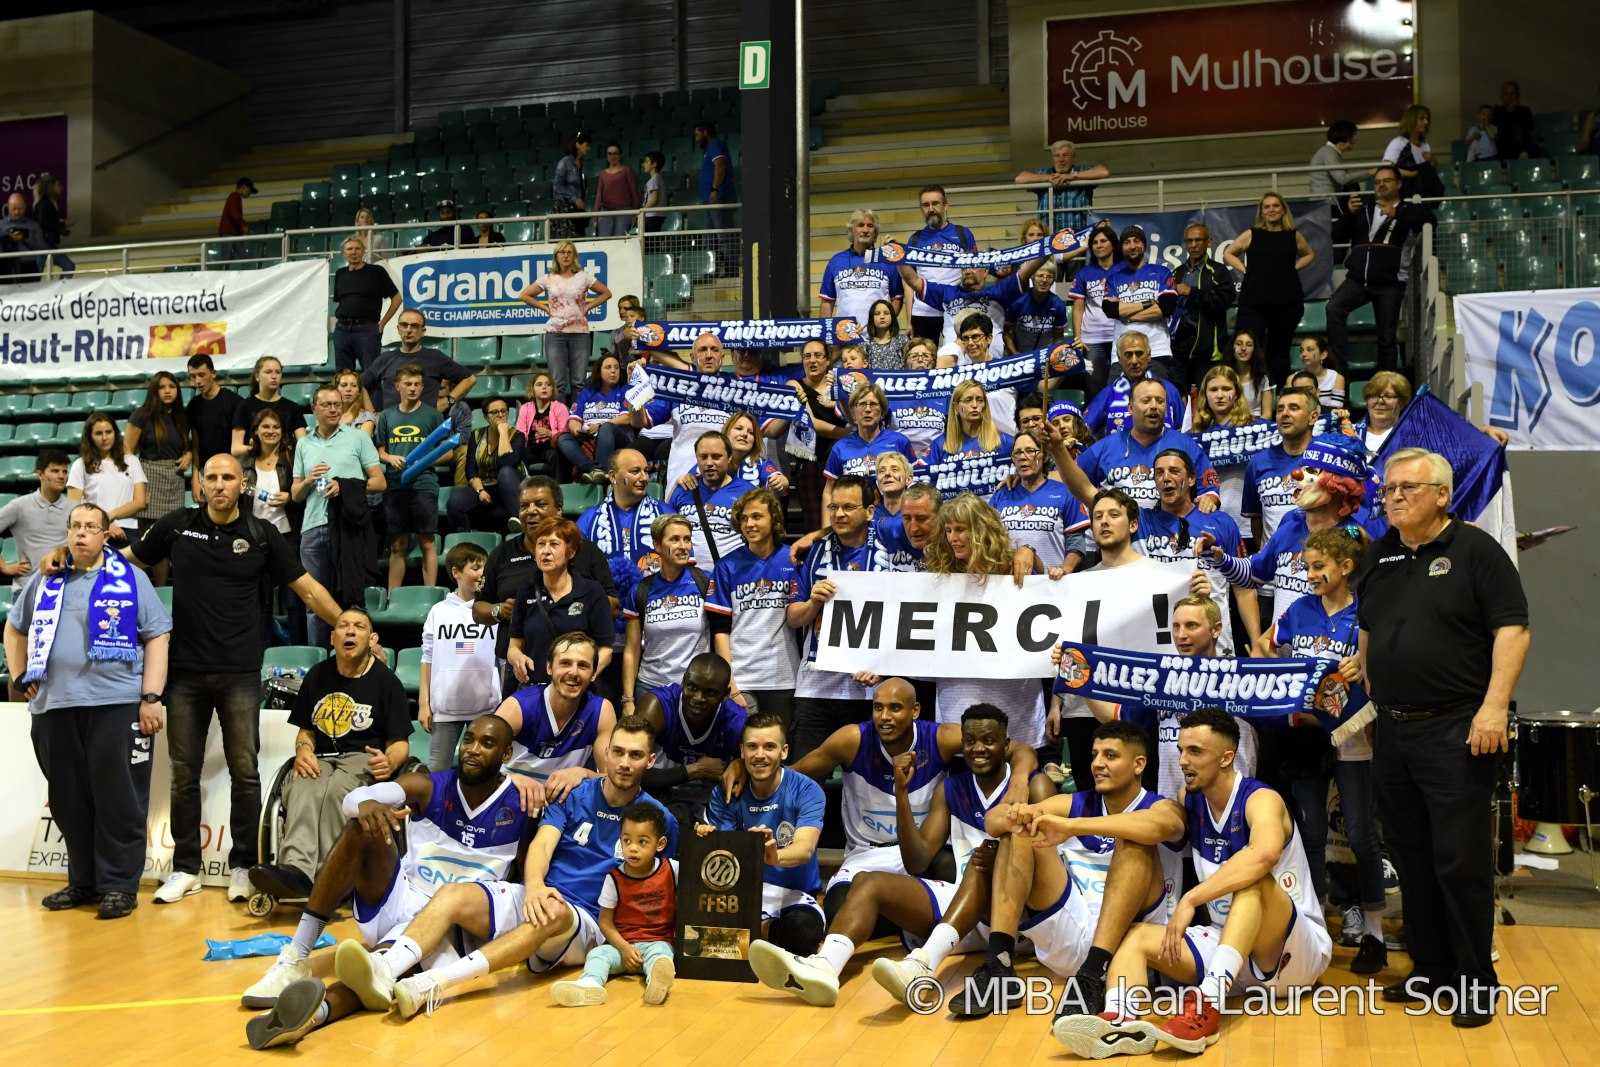 [J.05] Pfastatt AS Saint-Maurice - FC MULHOUSE : 87 - 69 - Page 2 Merci